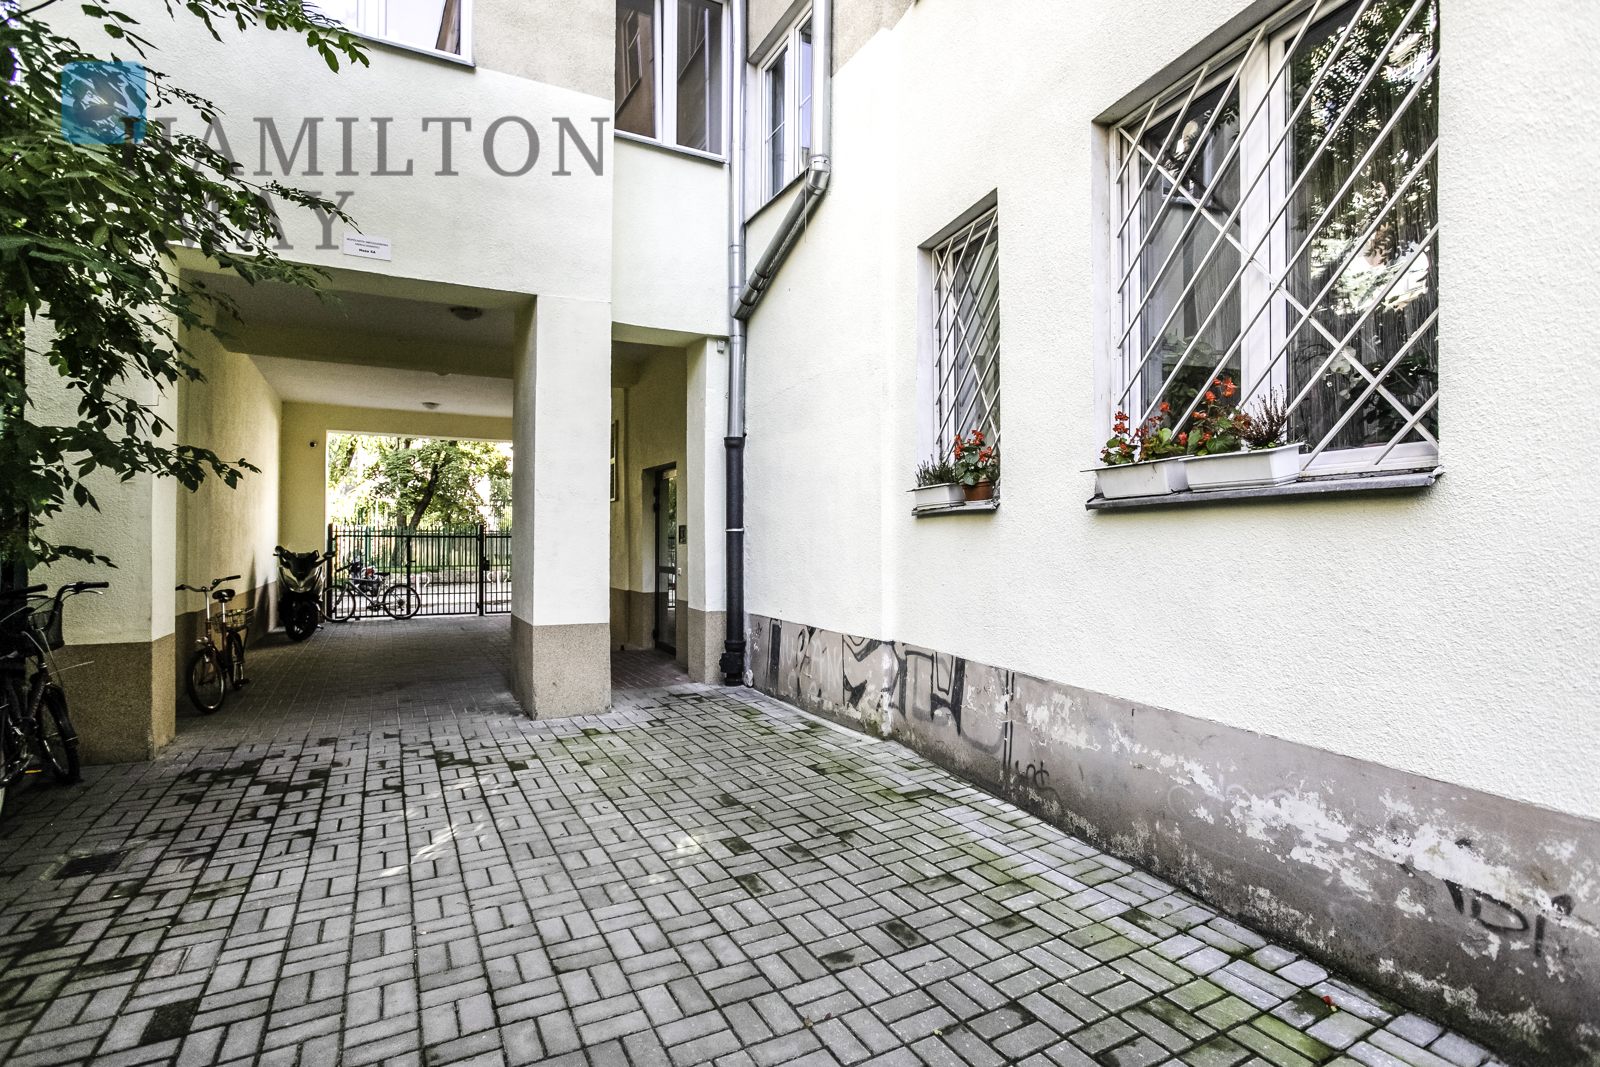 Apartment with a balcony in a tenement house at the backyard of Hoża Street near Pl. Trzech Krzyży Warsaw for sale